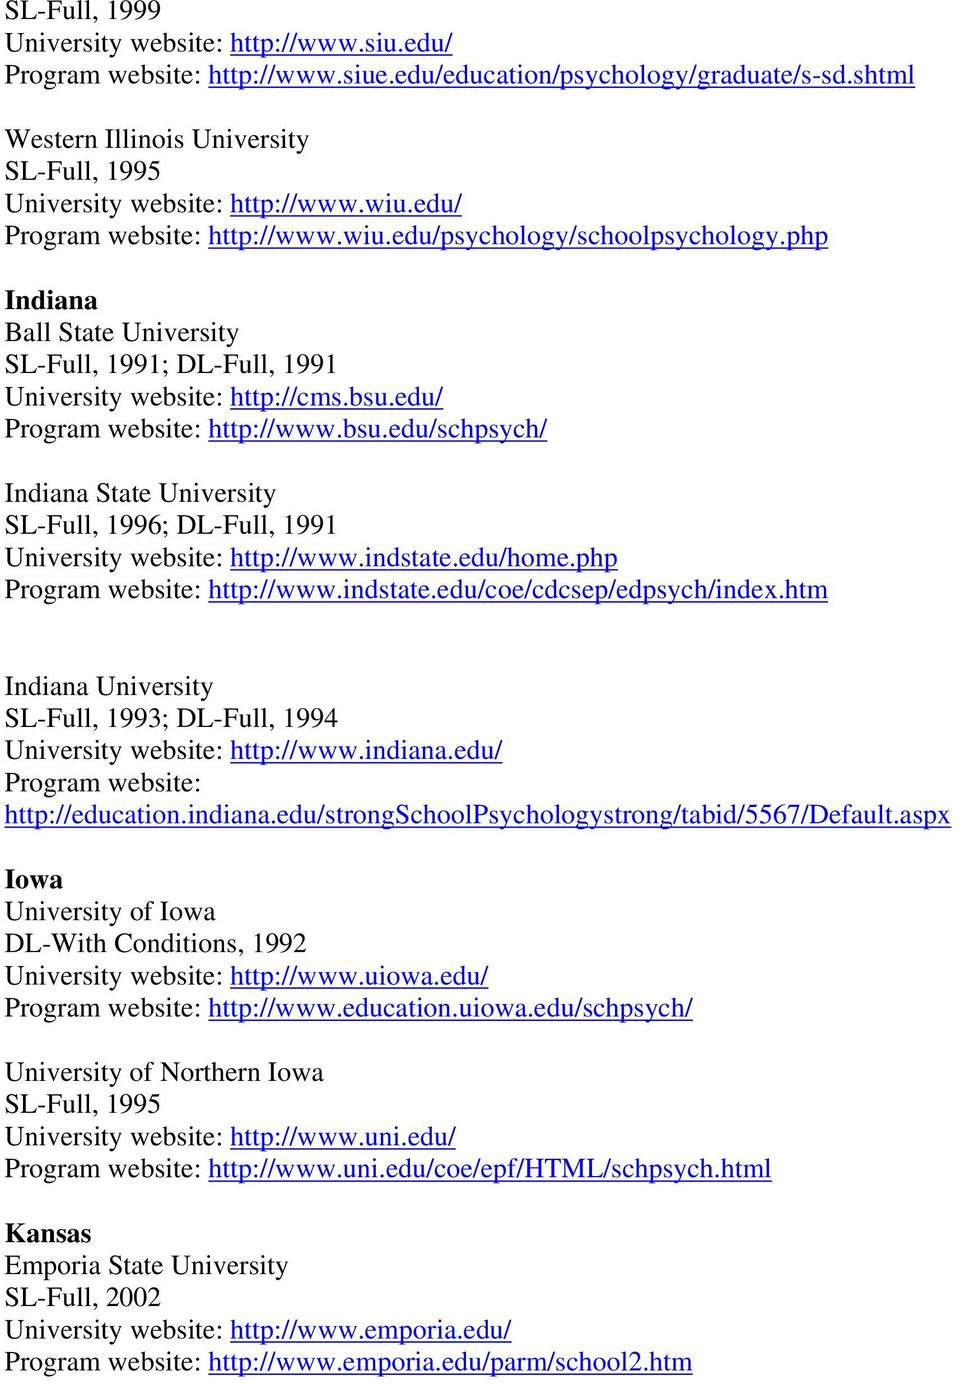 edu/ http://www.bsu.edu/schpsych/ Indiana State University SL-Full, 1996; DL-Full, 1991 University website: http://www.indstate.edu/home.php http://www.indstate.edu/coe/cdcsep/edpsych/index.